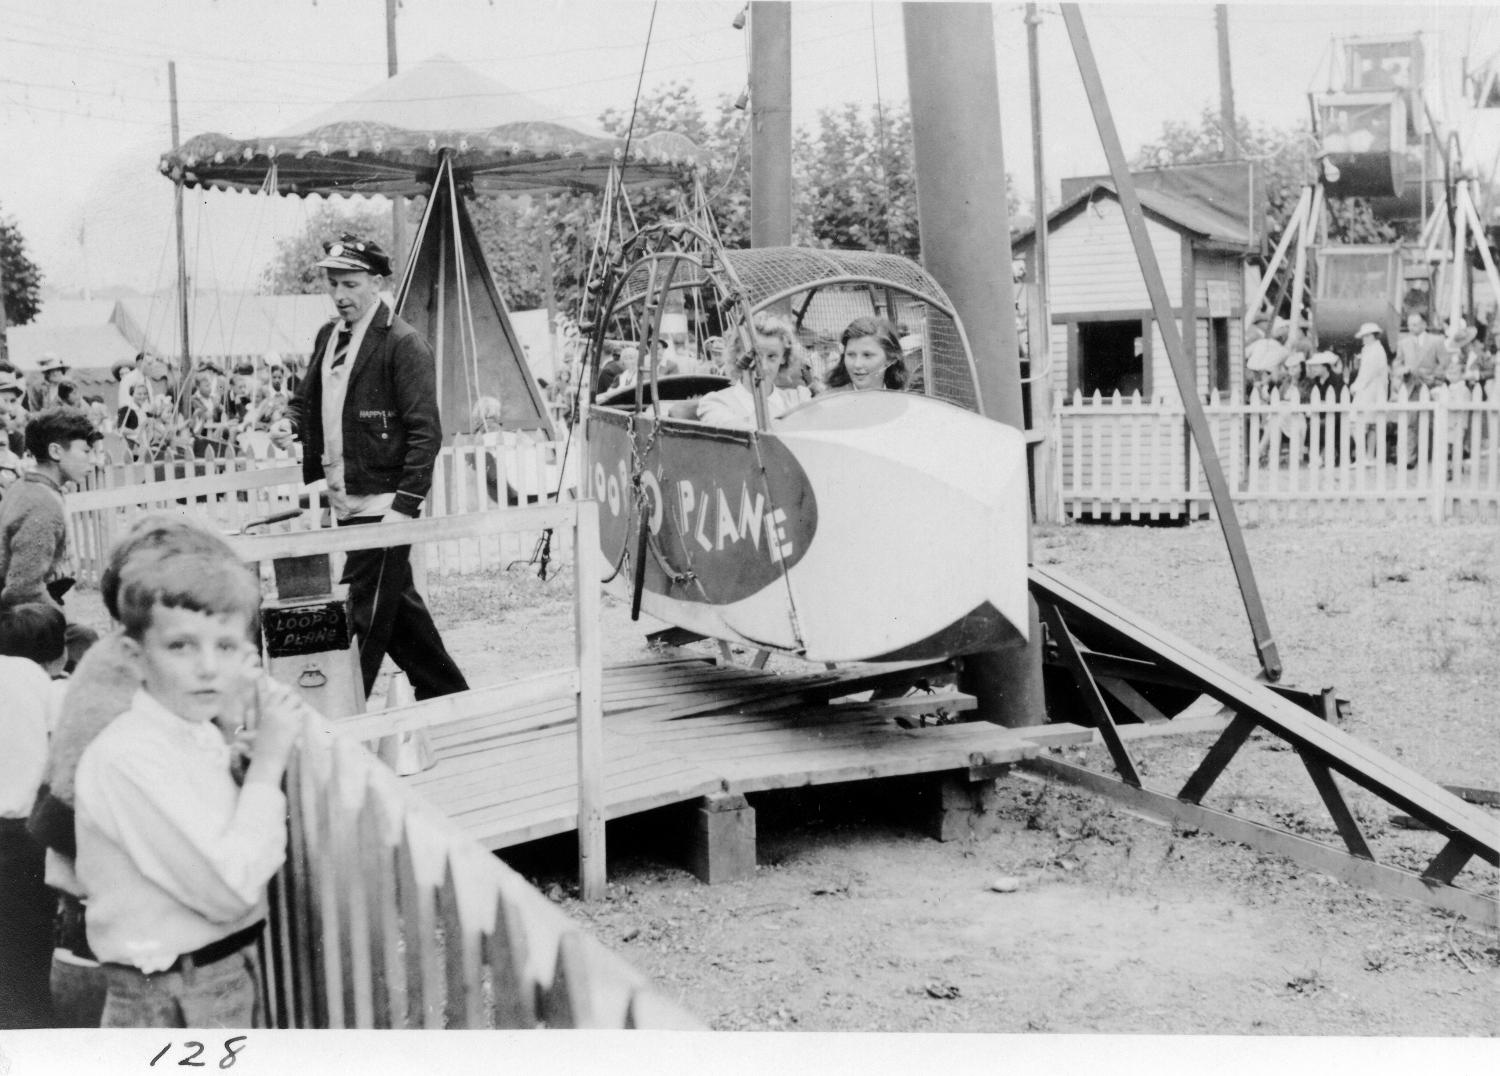 Loopo plane ride in midway carnival, 1940. Item CVA 180-0798.